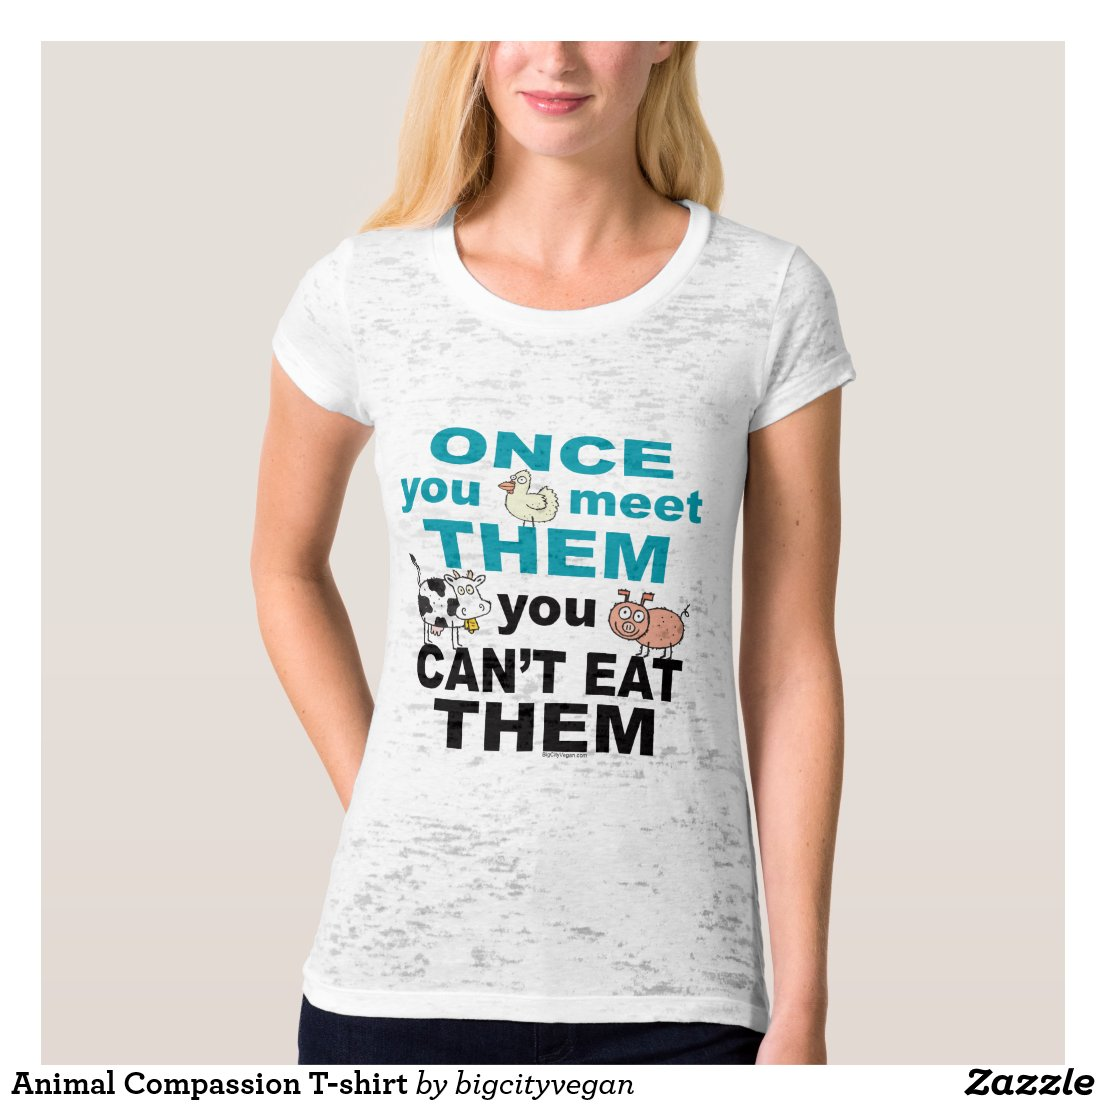 Animal Compassion T-shirt